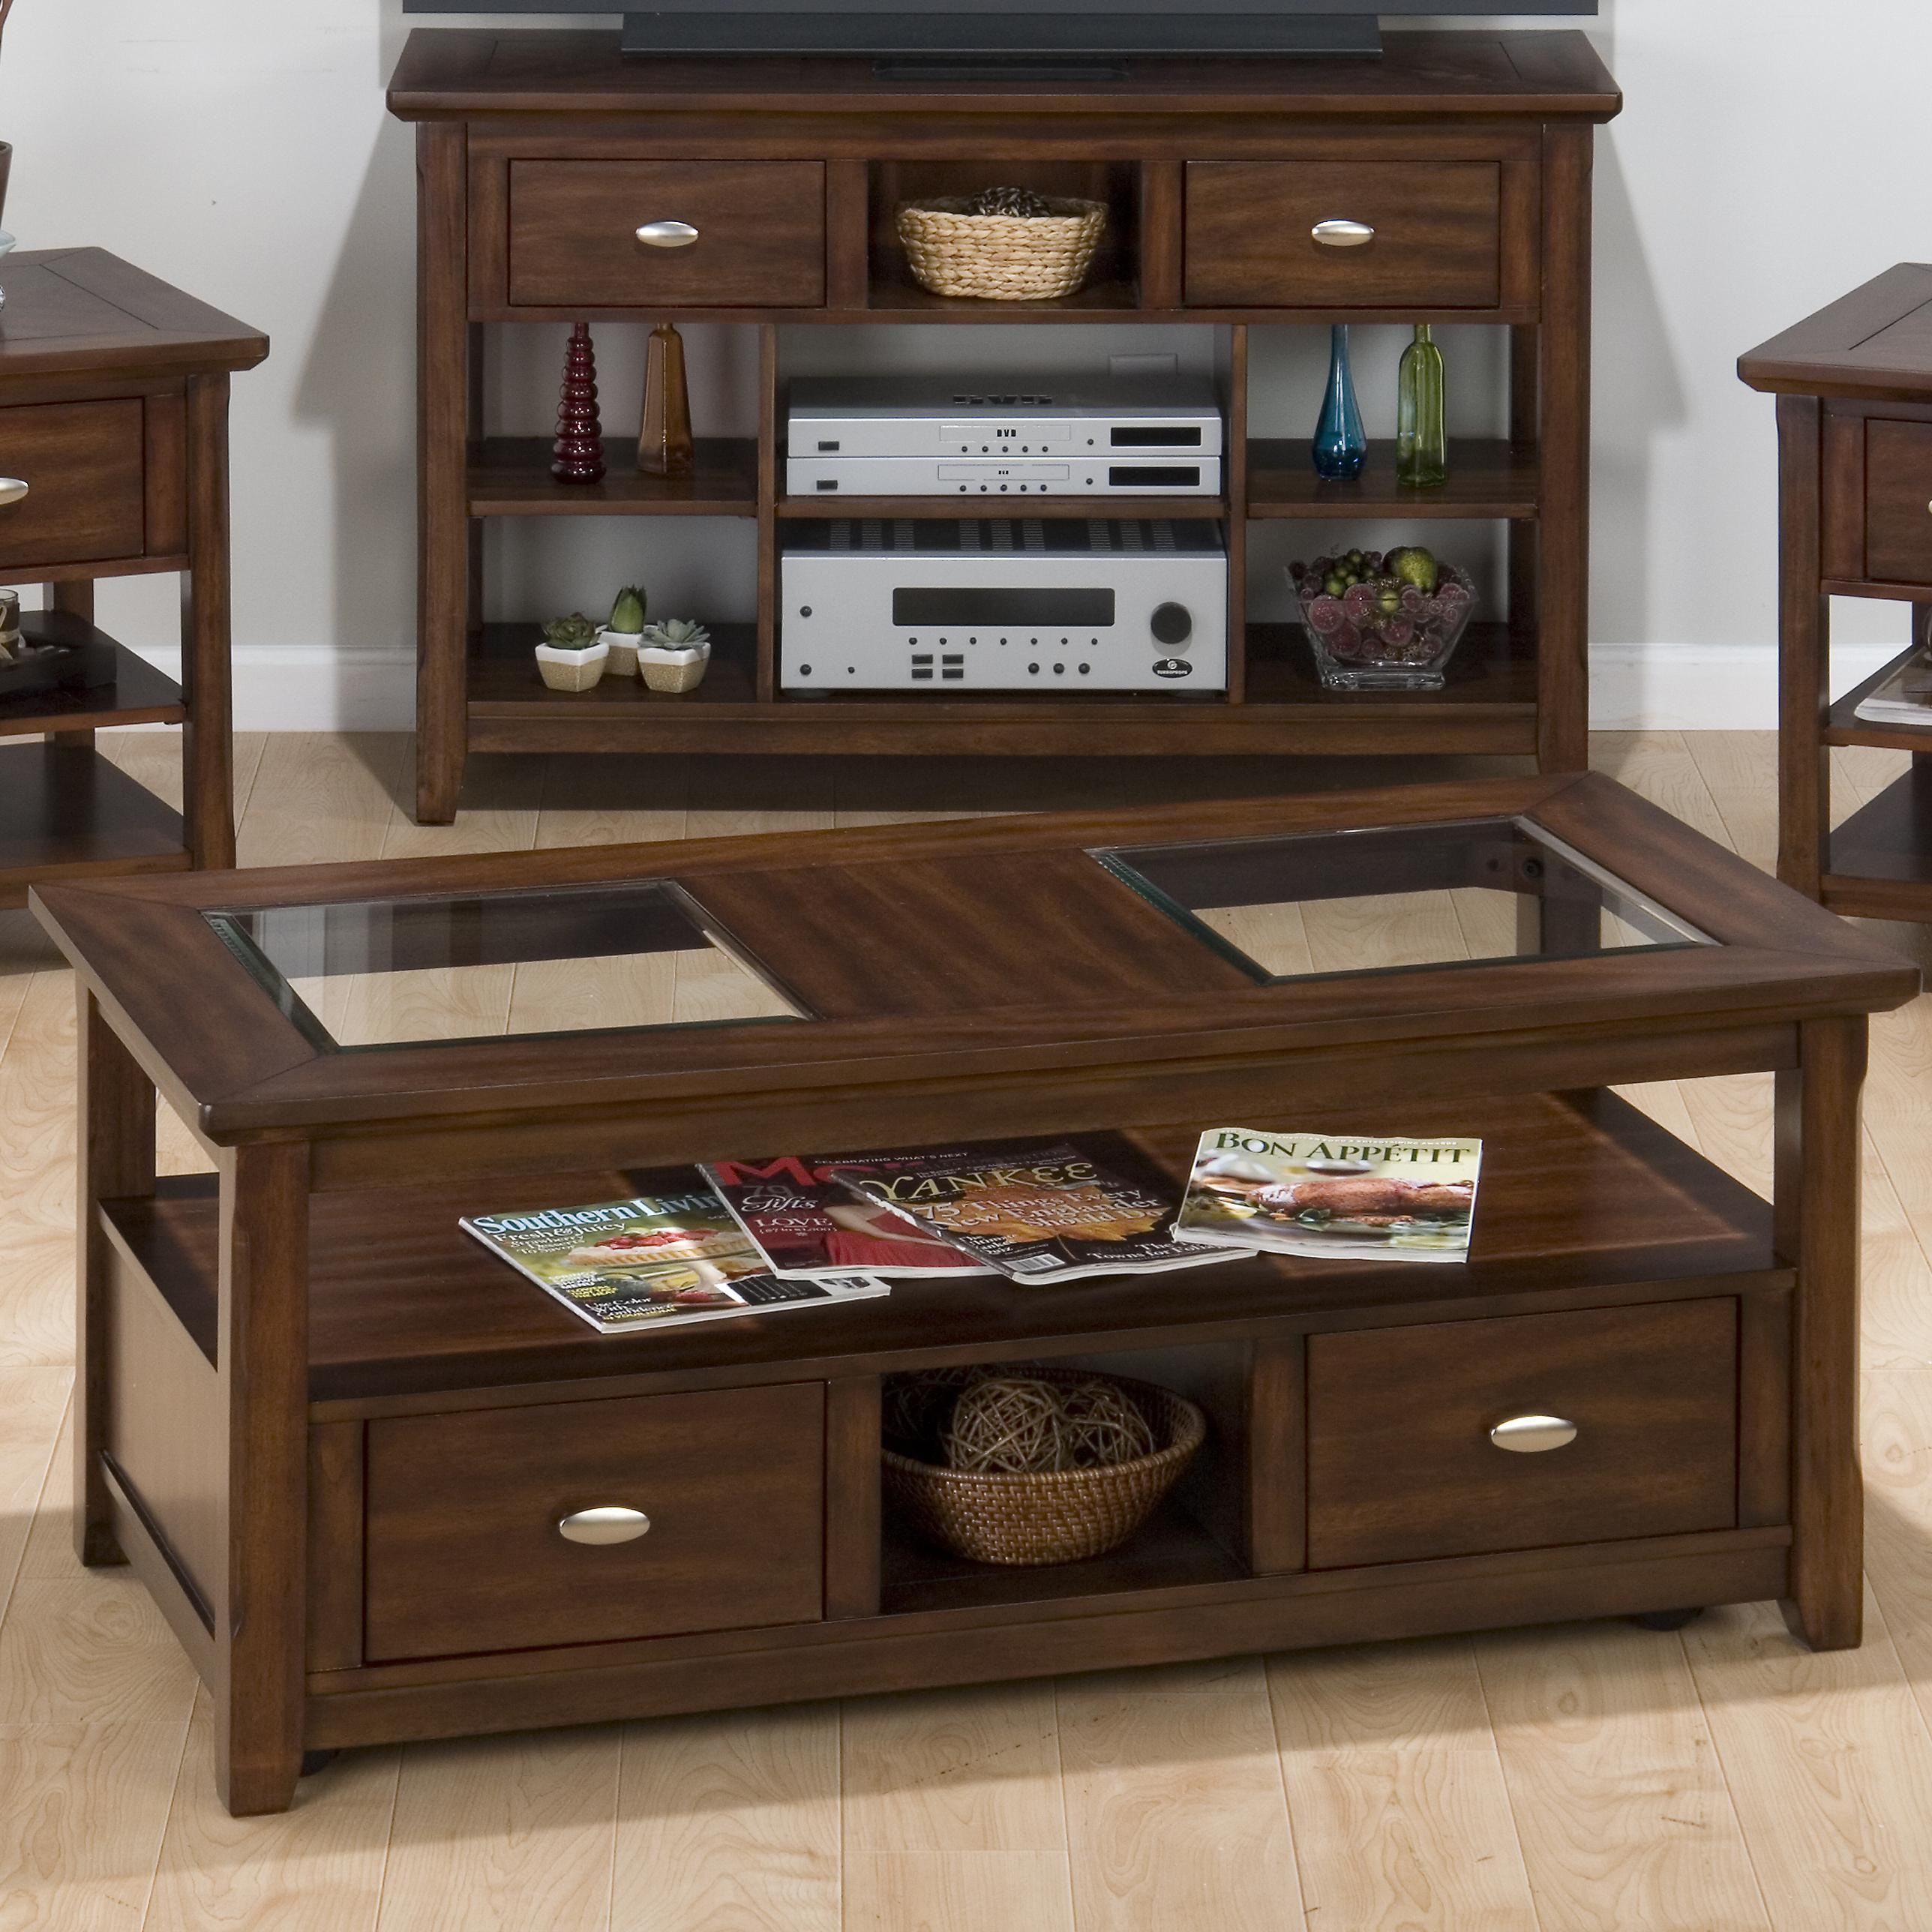 Bellingham Brown Cocktail table w/ 2 Drawers, Shelf & Casters by Jofran at Pilgrim Furniture City